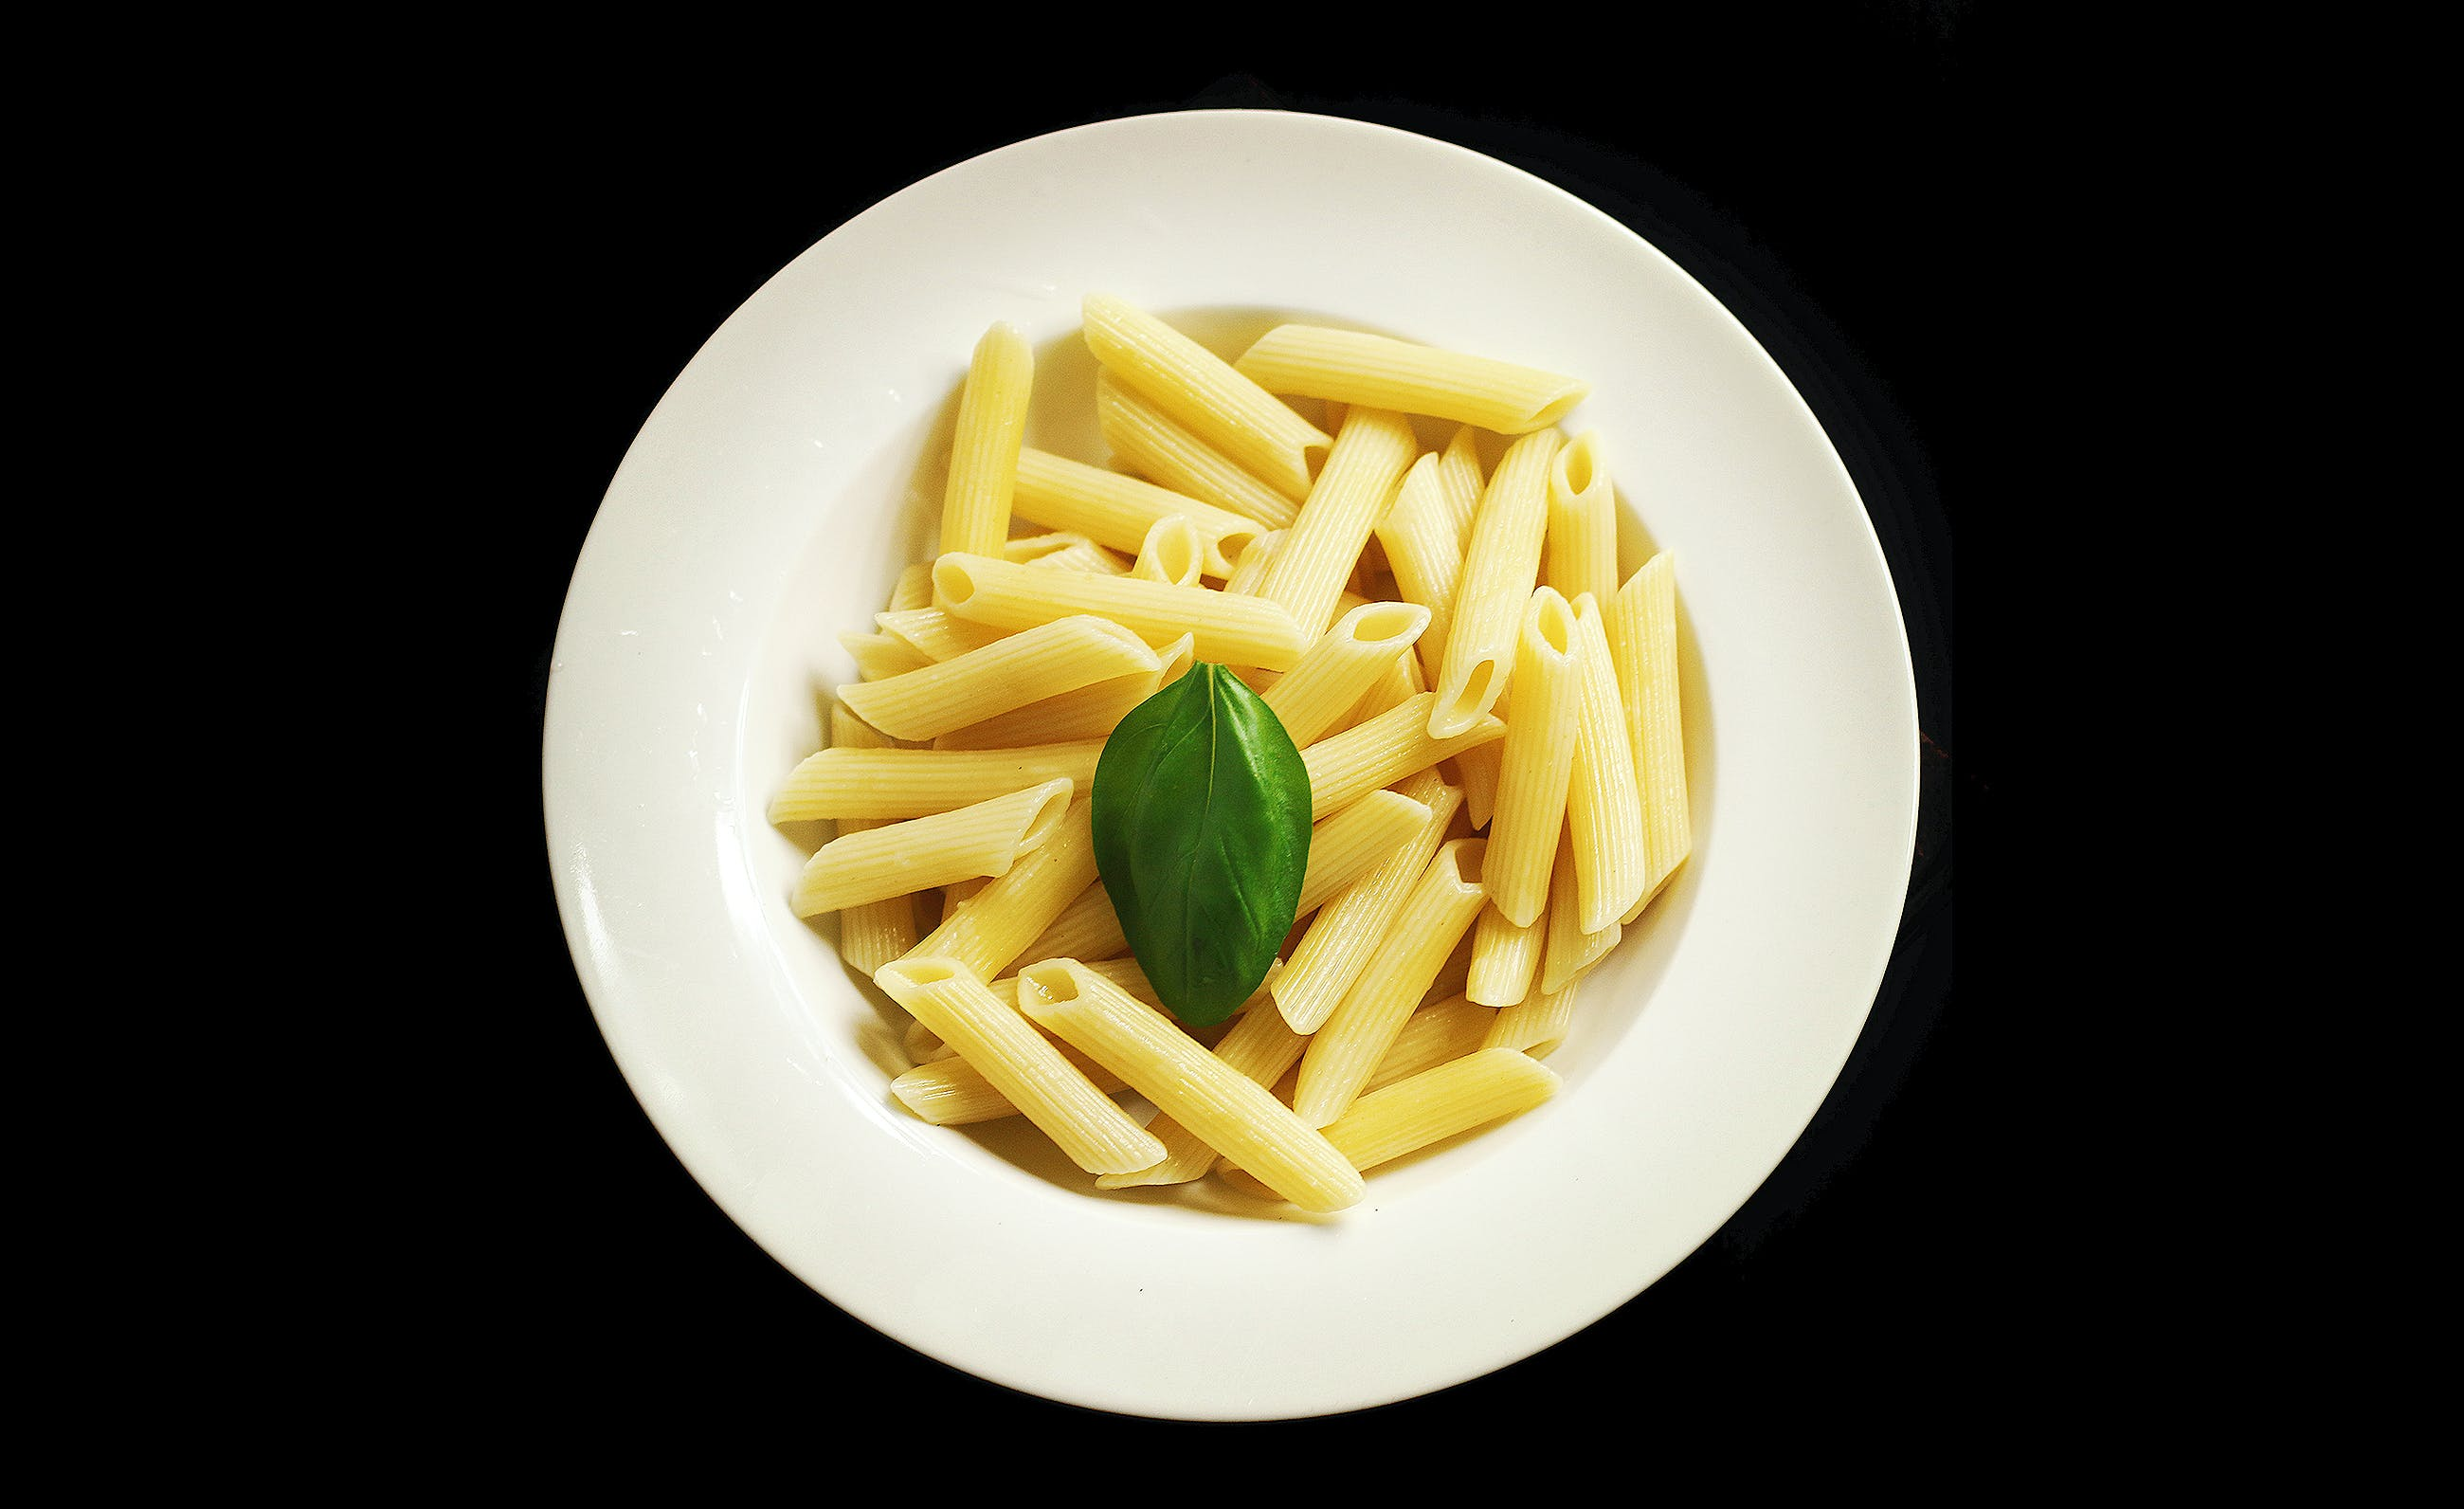 White Ceramic Plate With Pasta